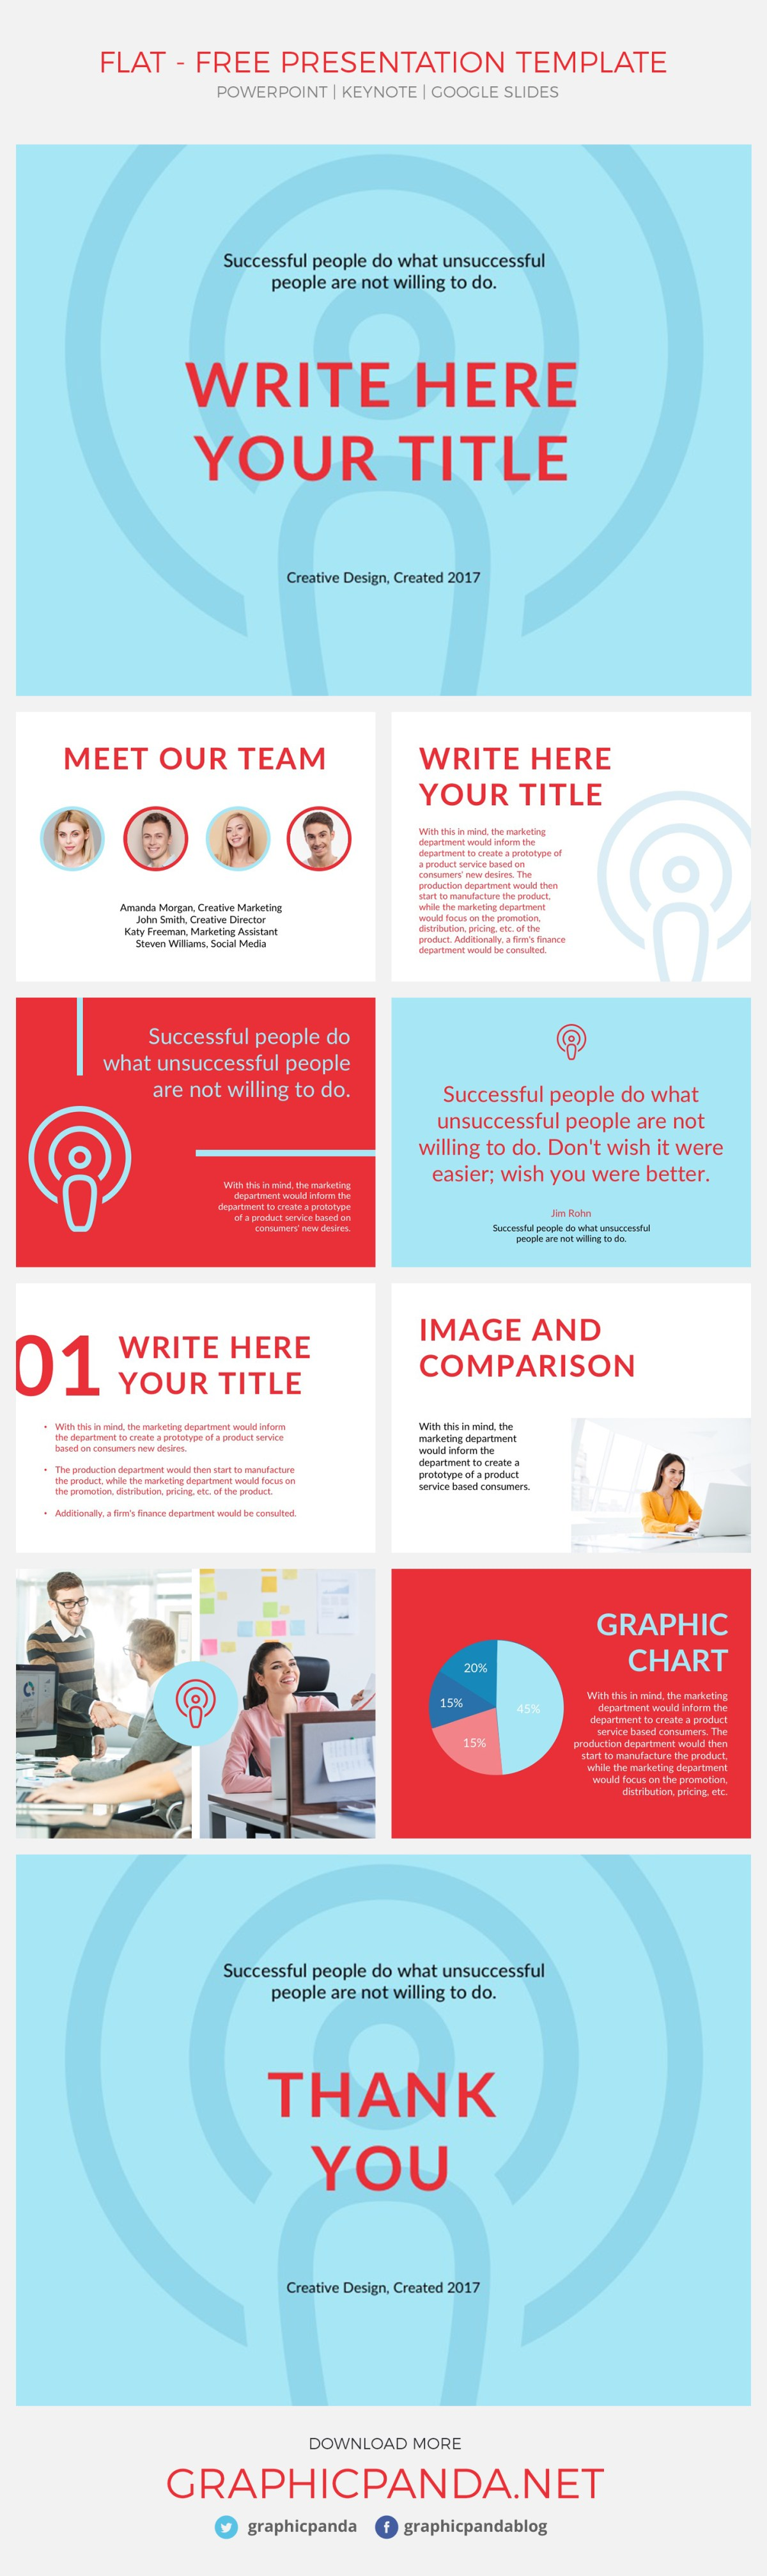 Top 60 best free keynote templates of 2018 present your ideas in a simple yet creative way with flat free presentation template this toneelgroepblik Choice Image